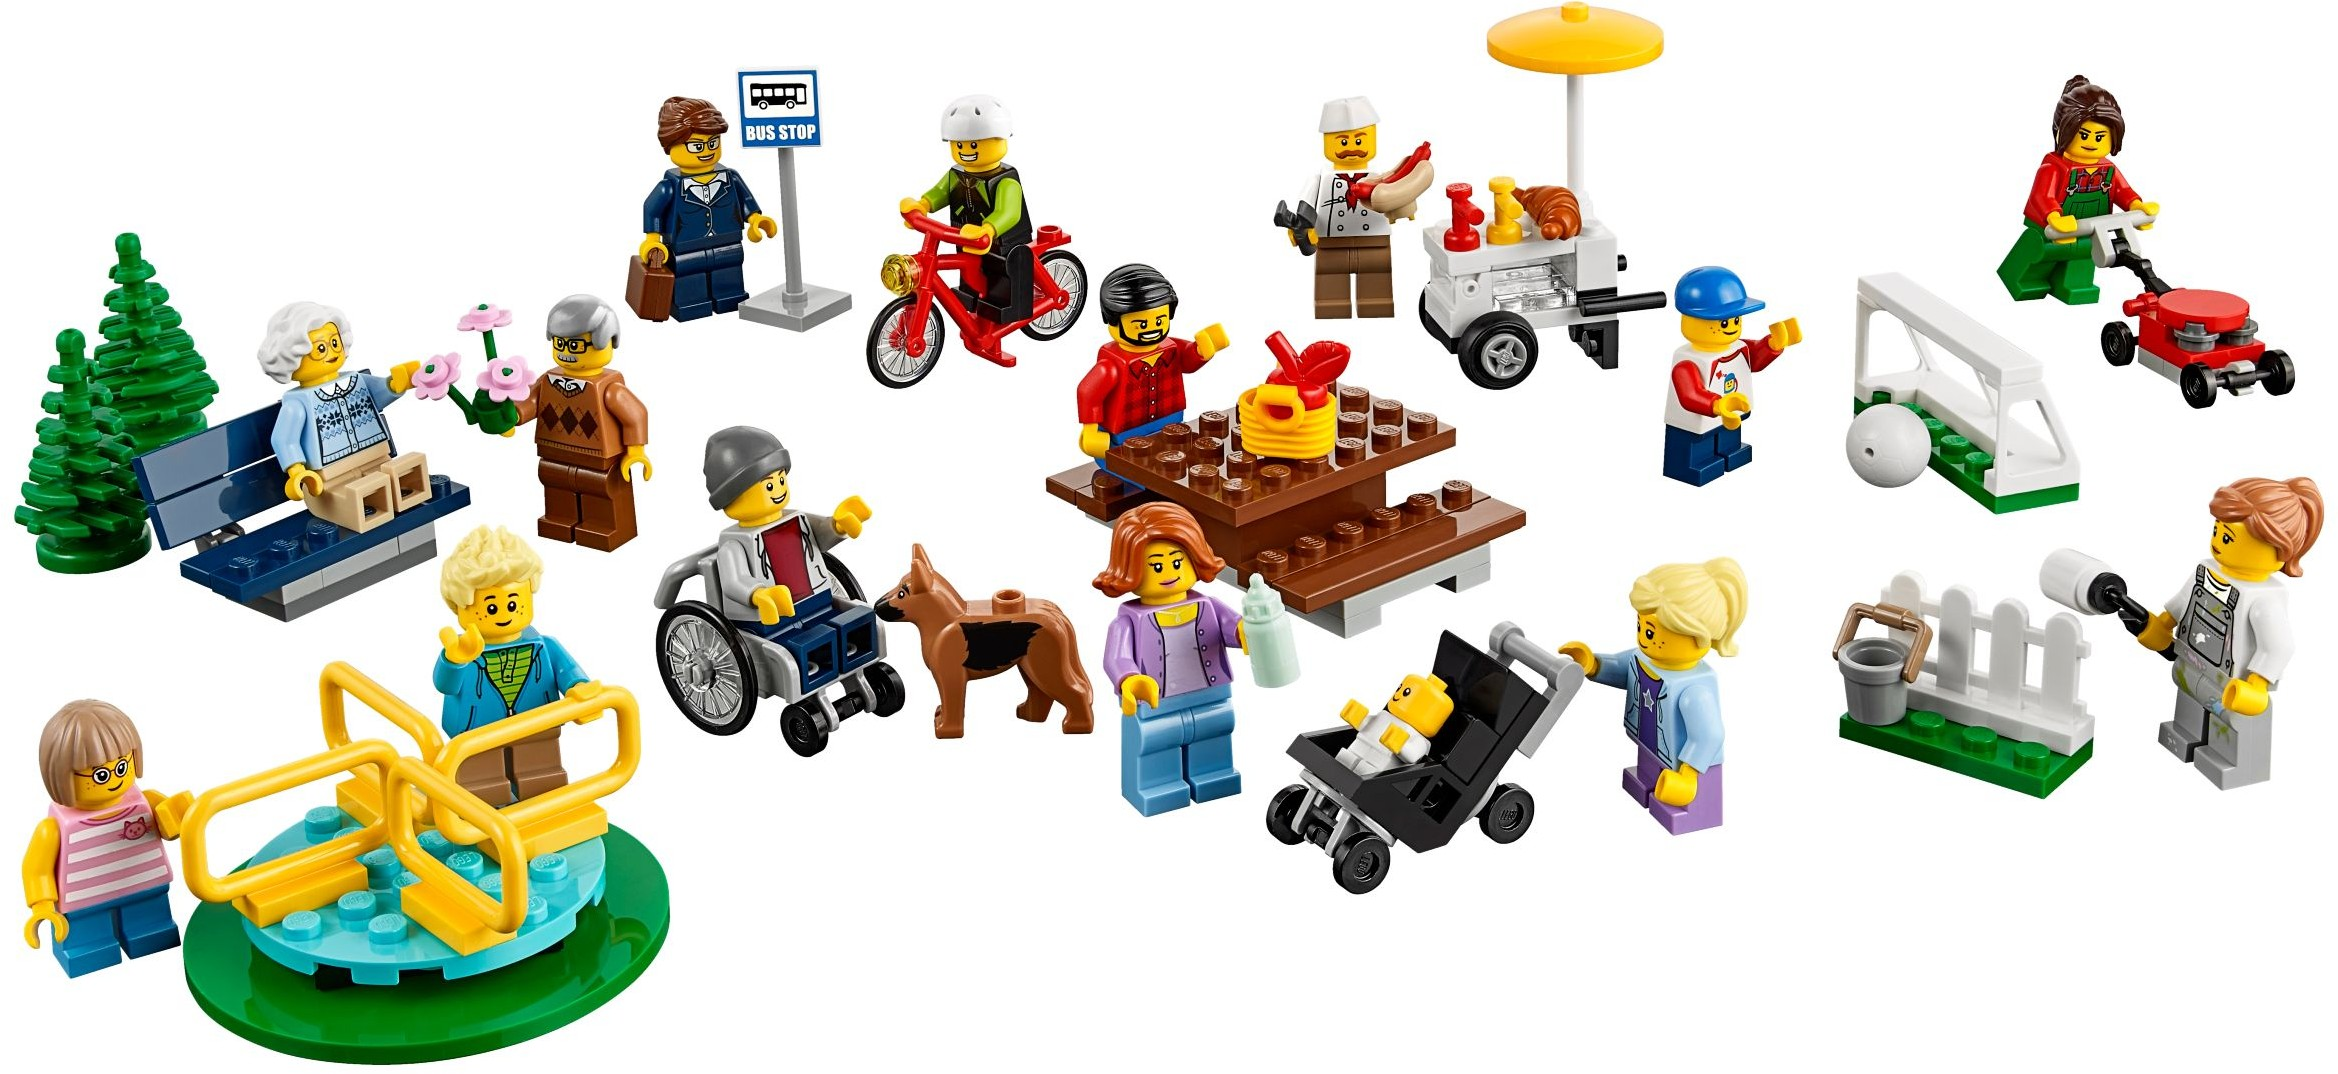 Could We See More Continuity in Future LEGO City Sets The Brick